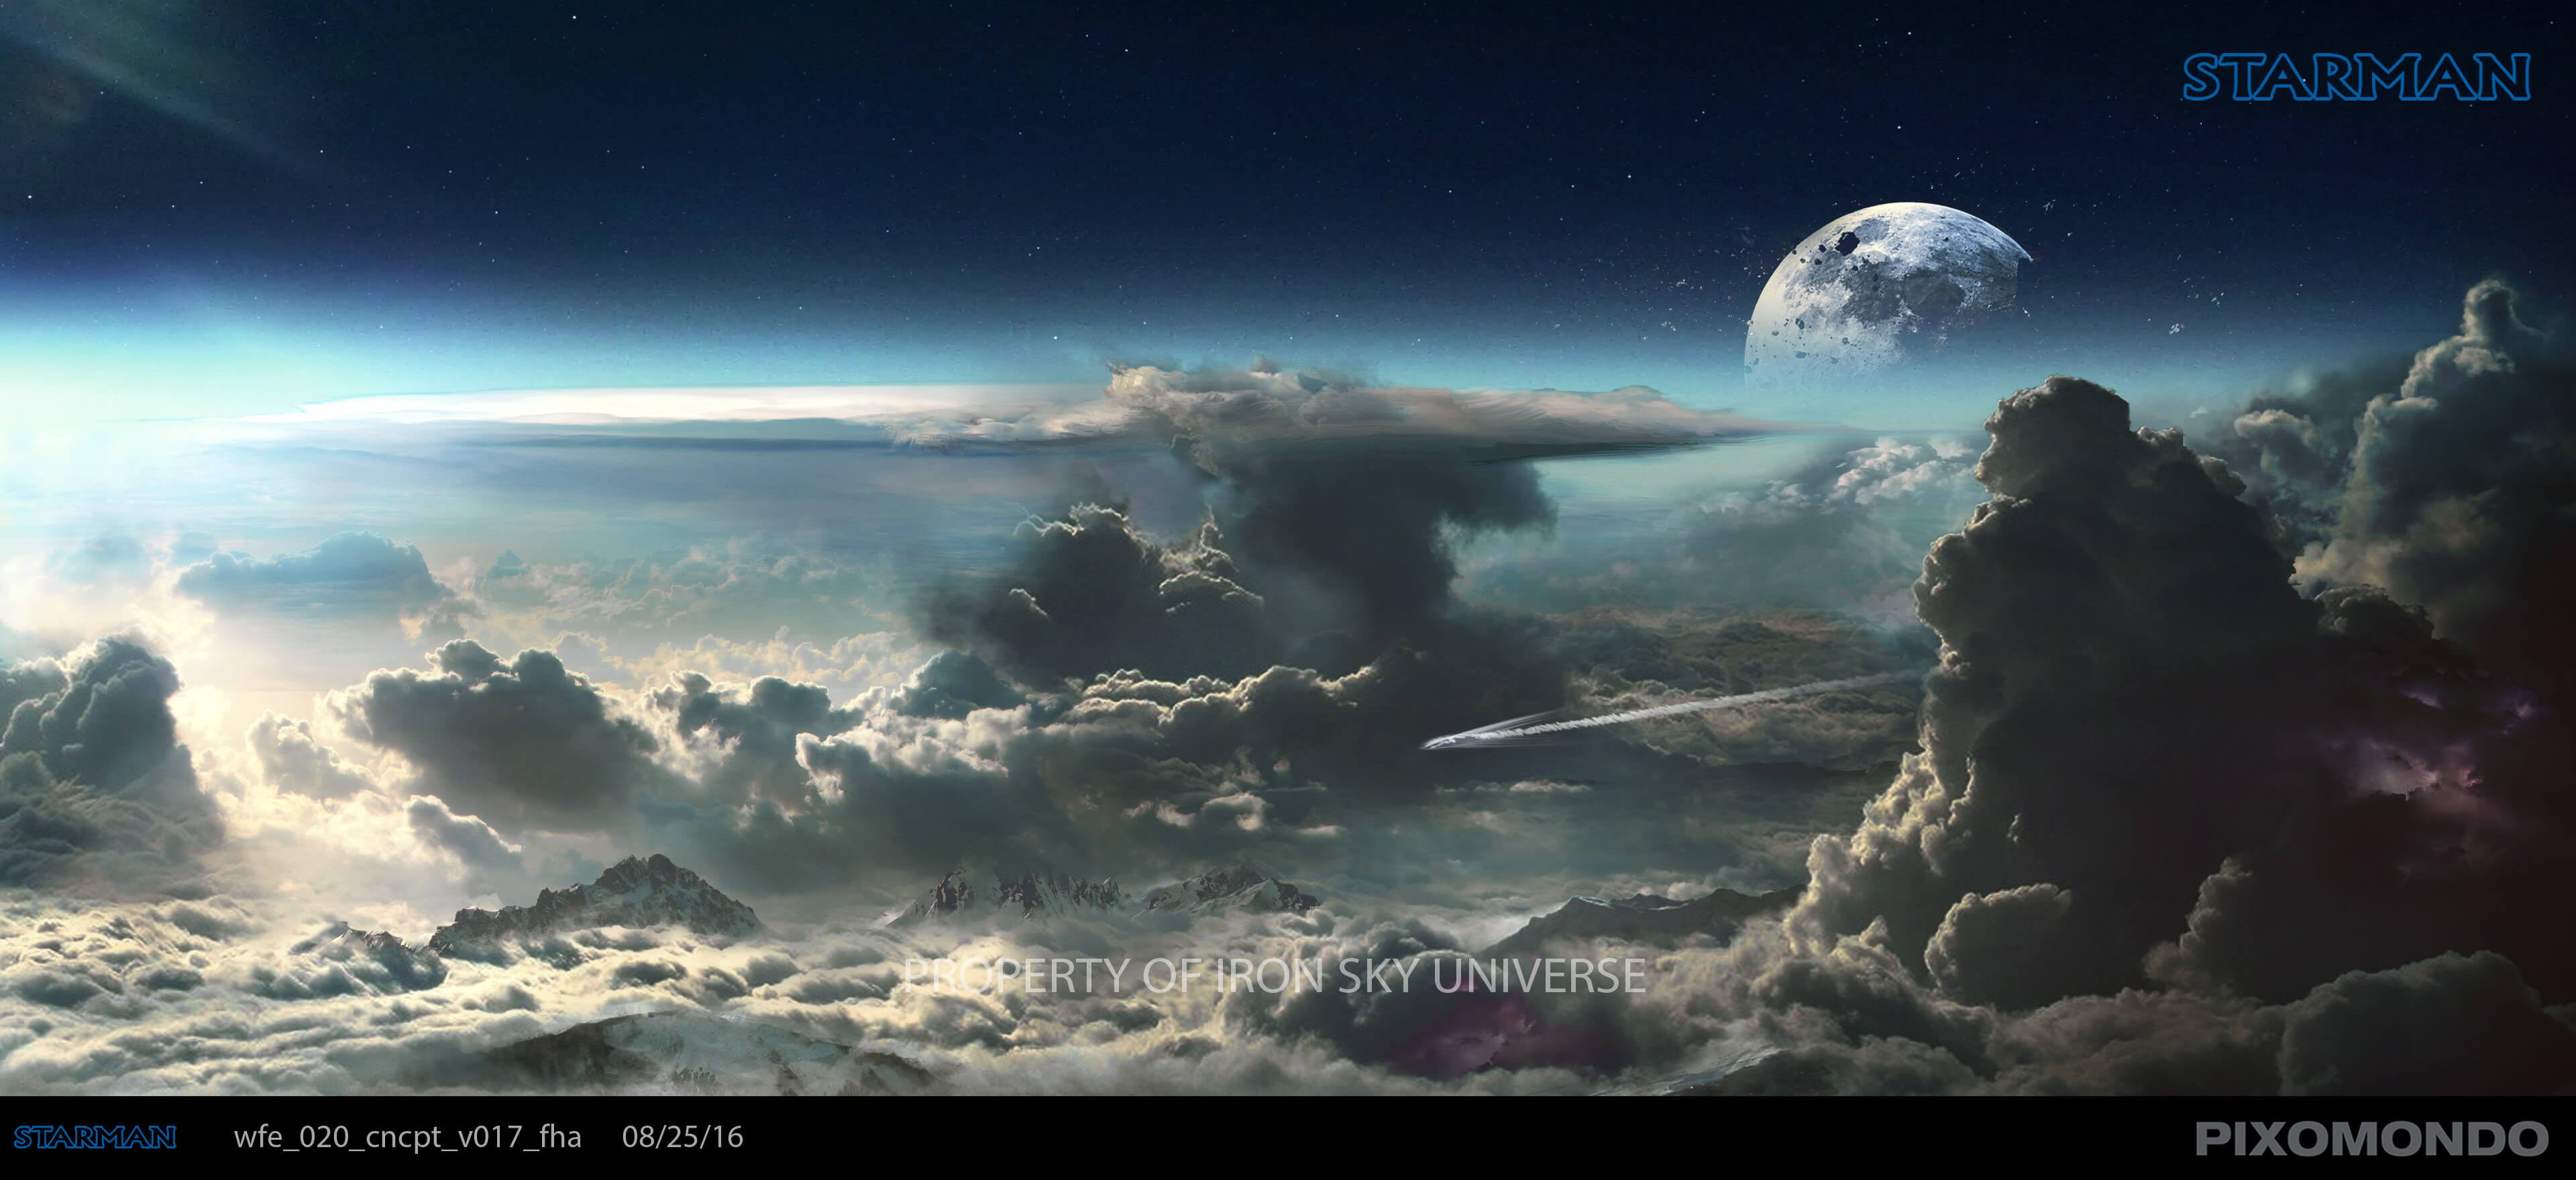 iron-sky-2-concept-art-walkyr-flying-earth-v017-pixomondo-felix-botho-haas.jpg.jpg